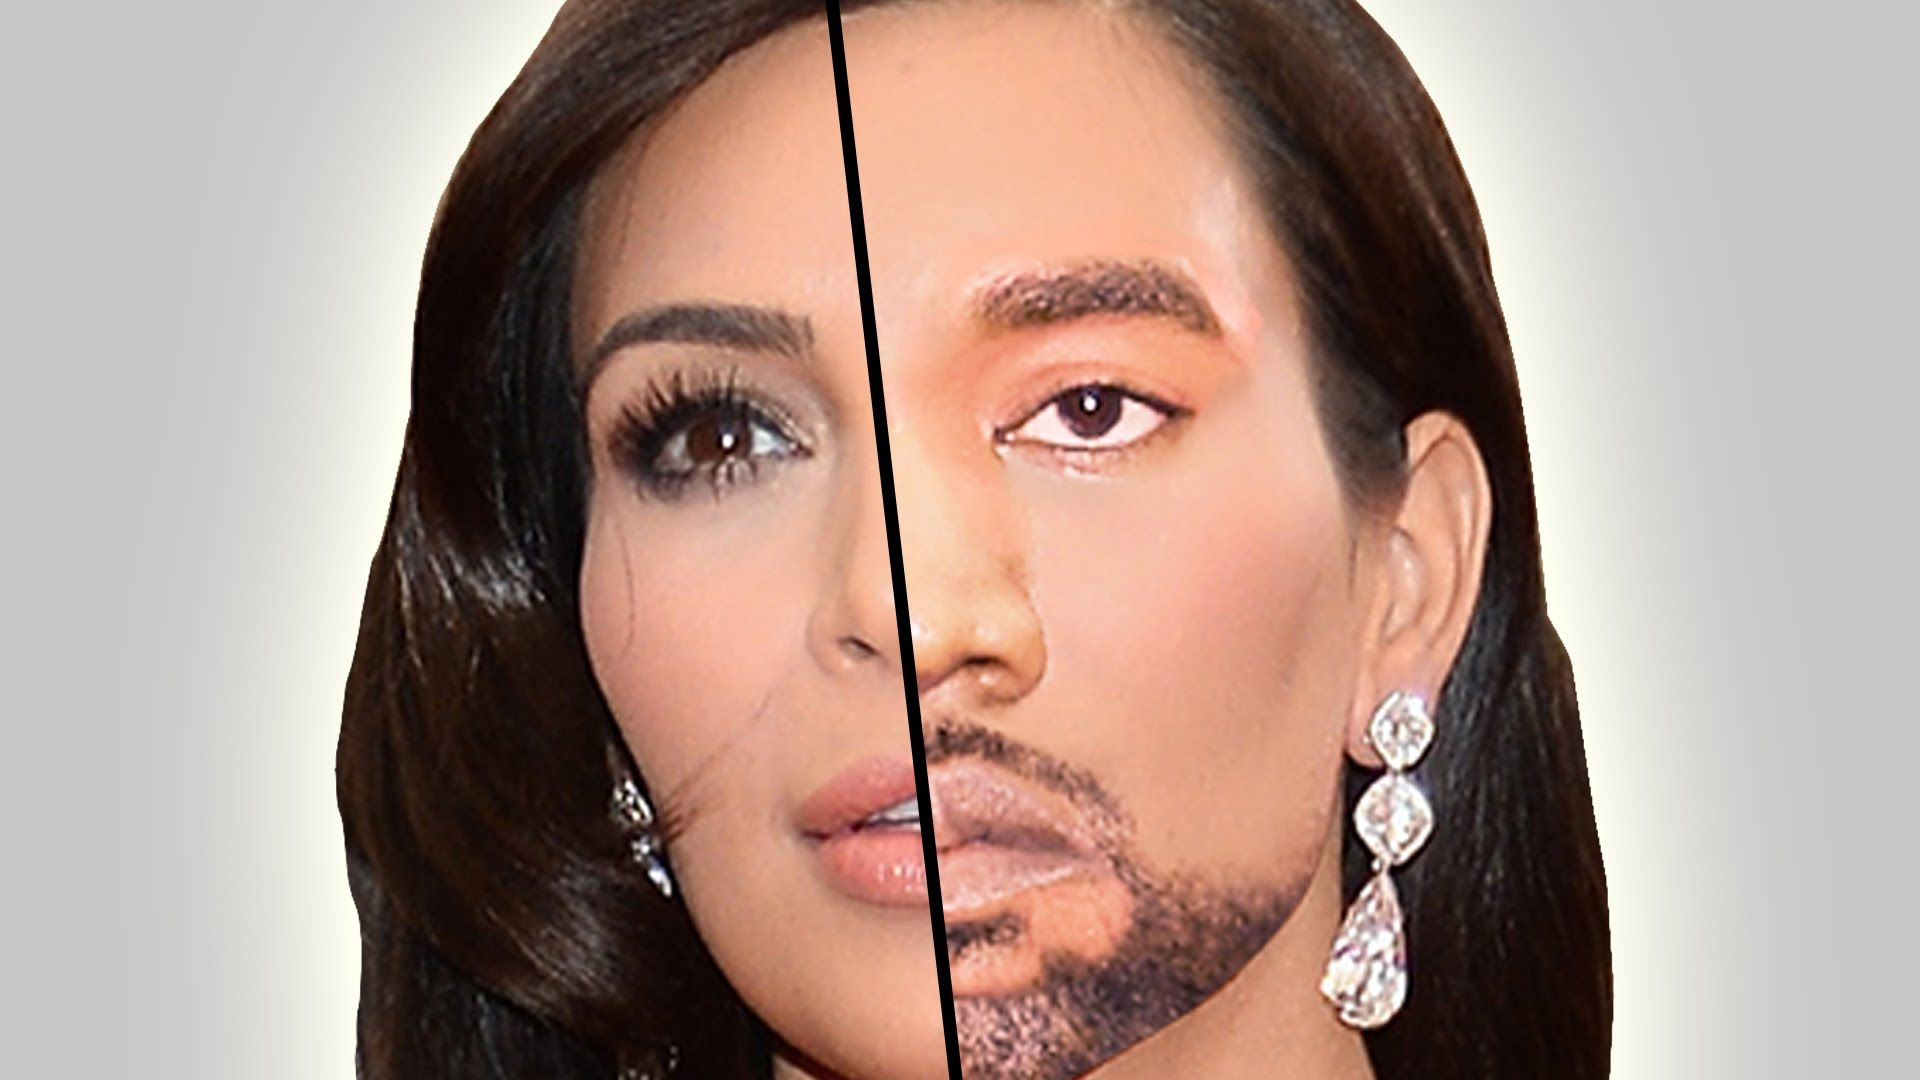 13 Terrifying Celebrity Face Swap Transformations Face